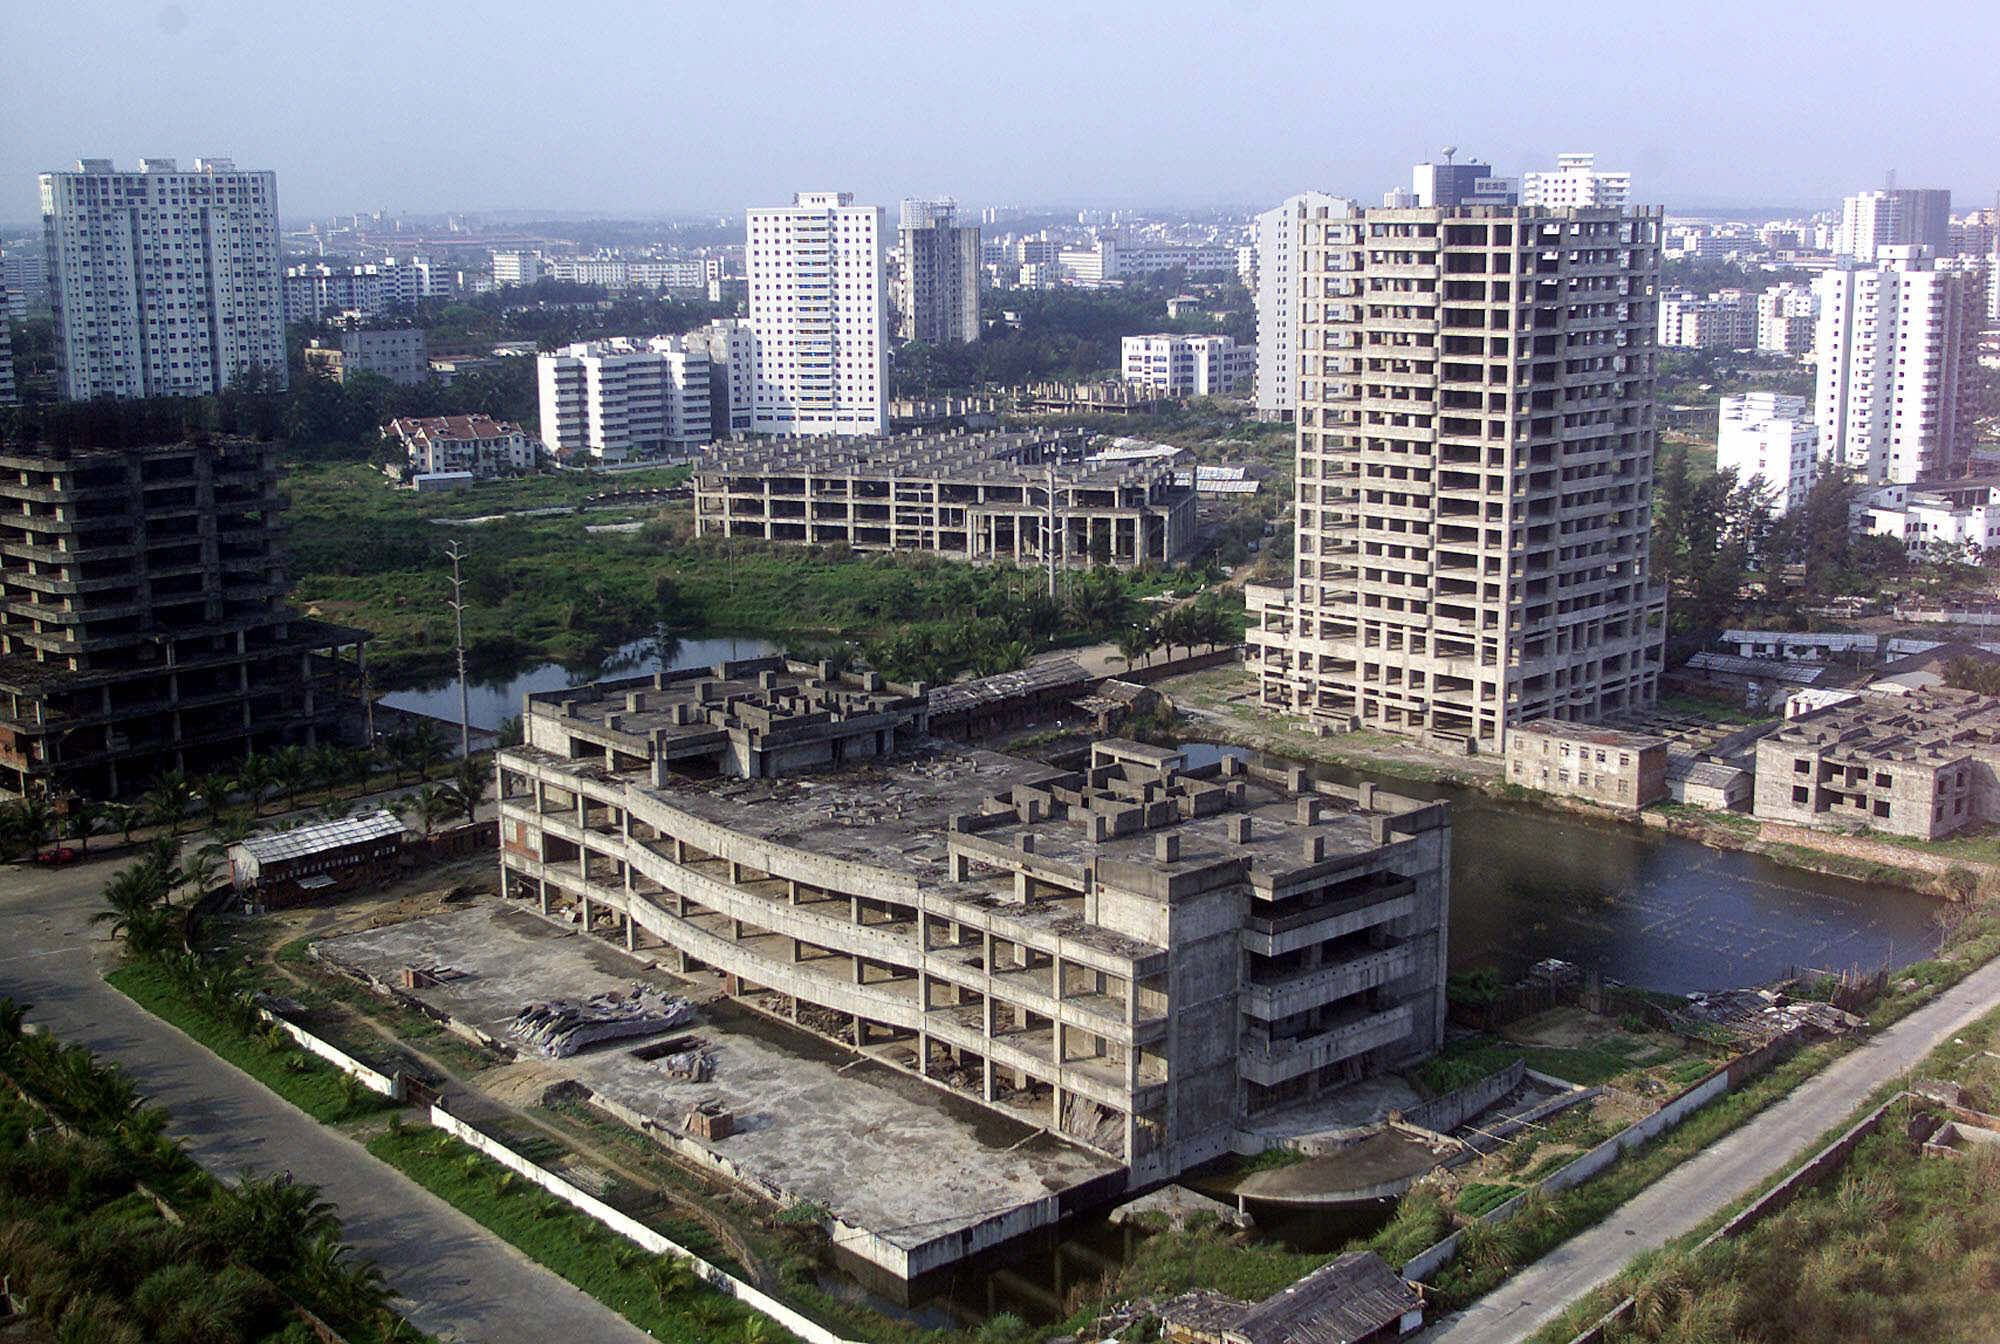 More than 150 buildings were left derelict after a real estate bubble collapsed in 1993 in Haikou, the capital city of Hainan.